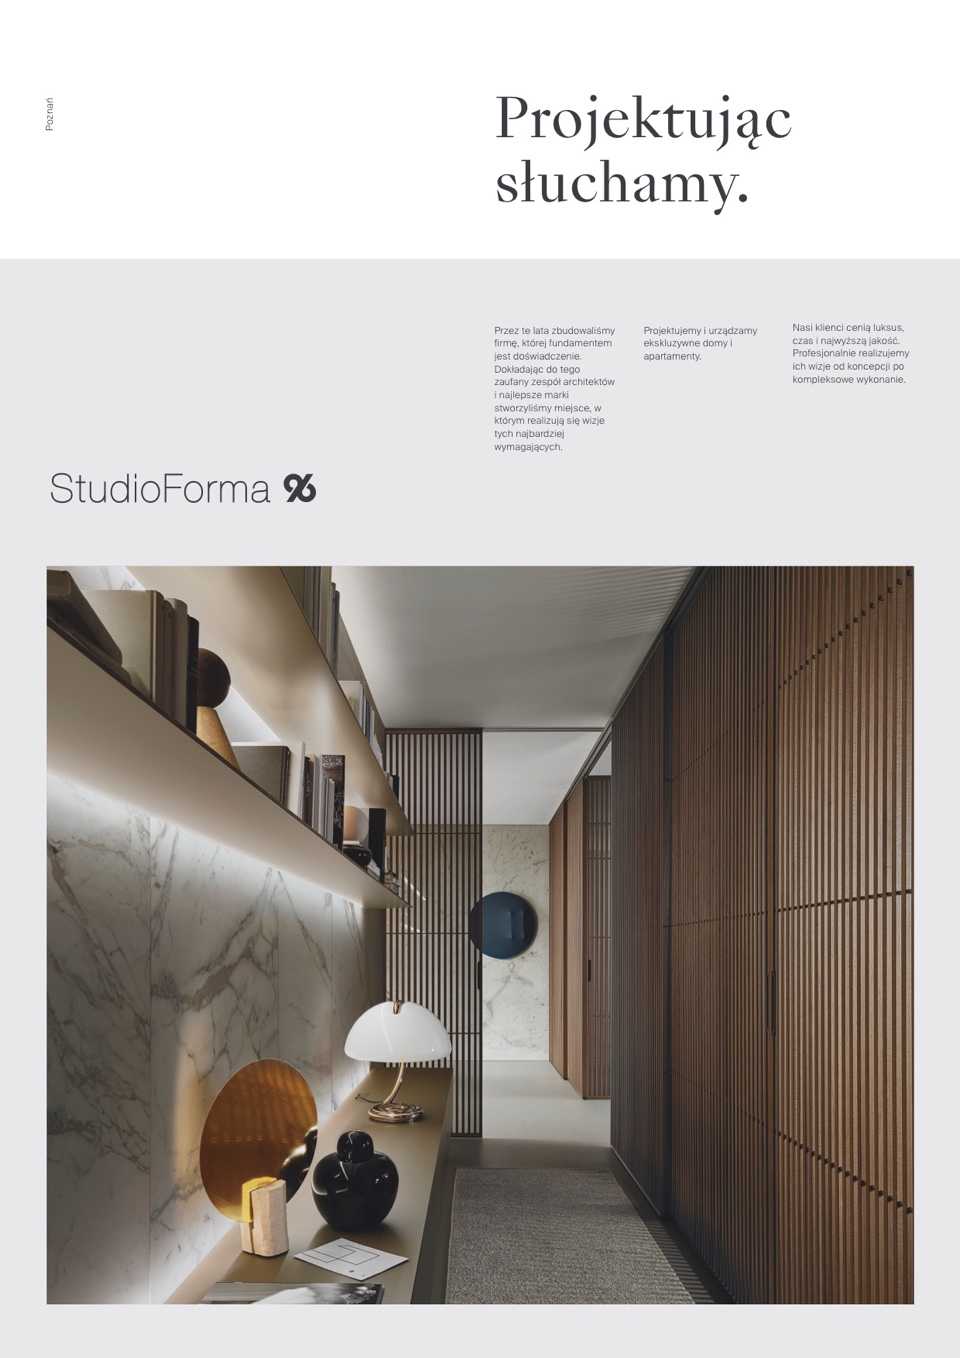 Cover design - StudioForma 96 by Uniforma